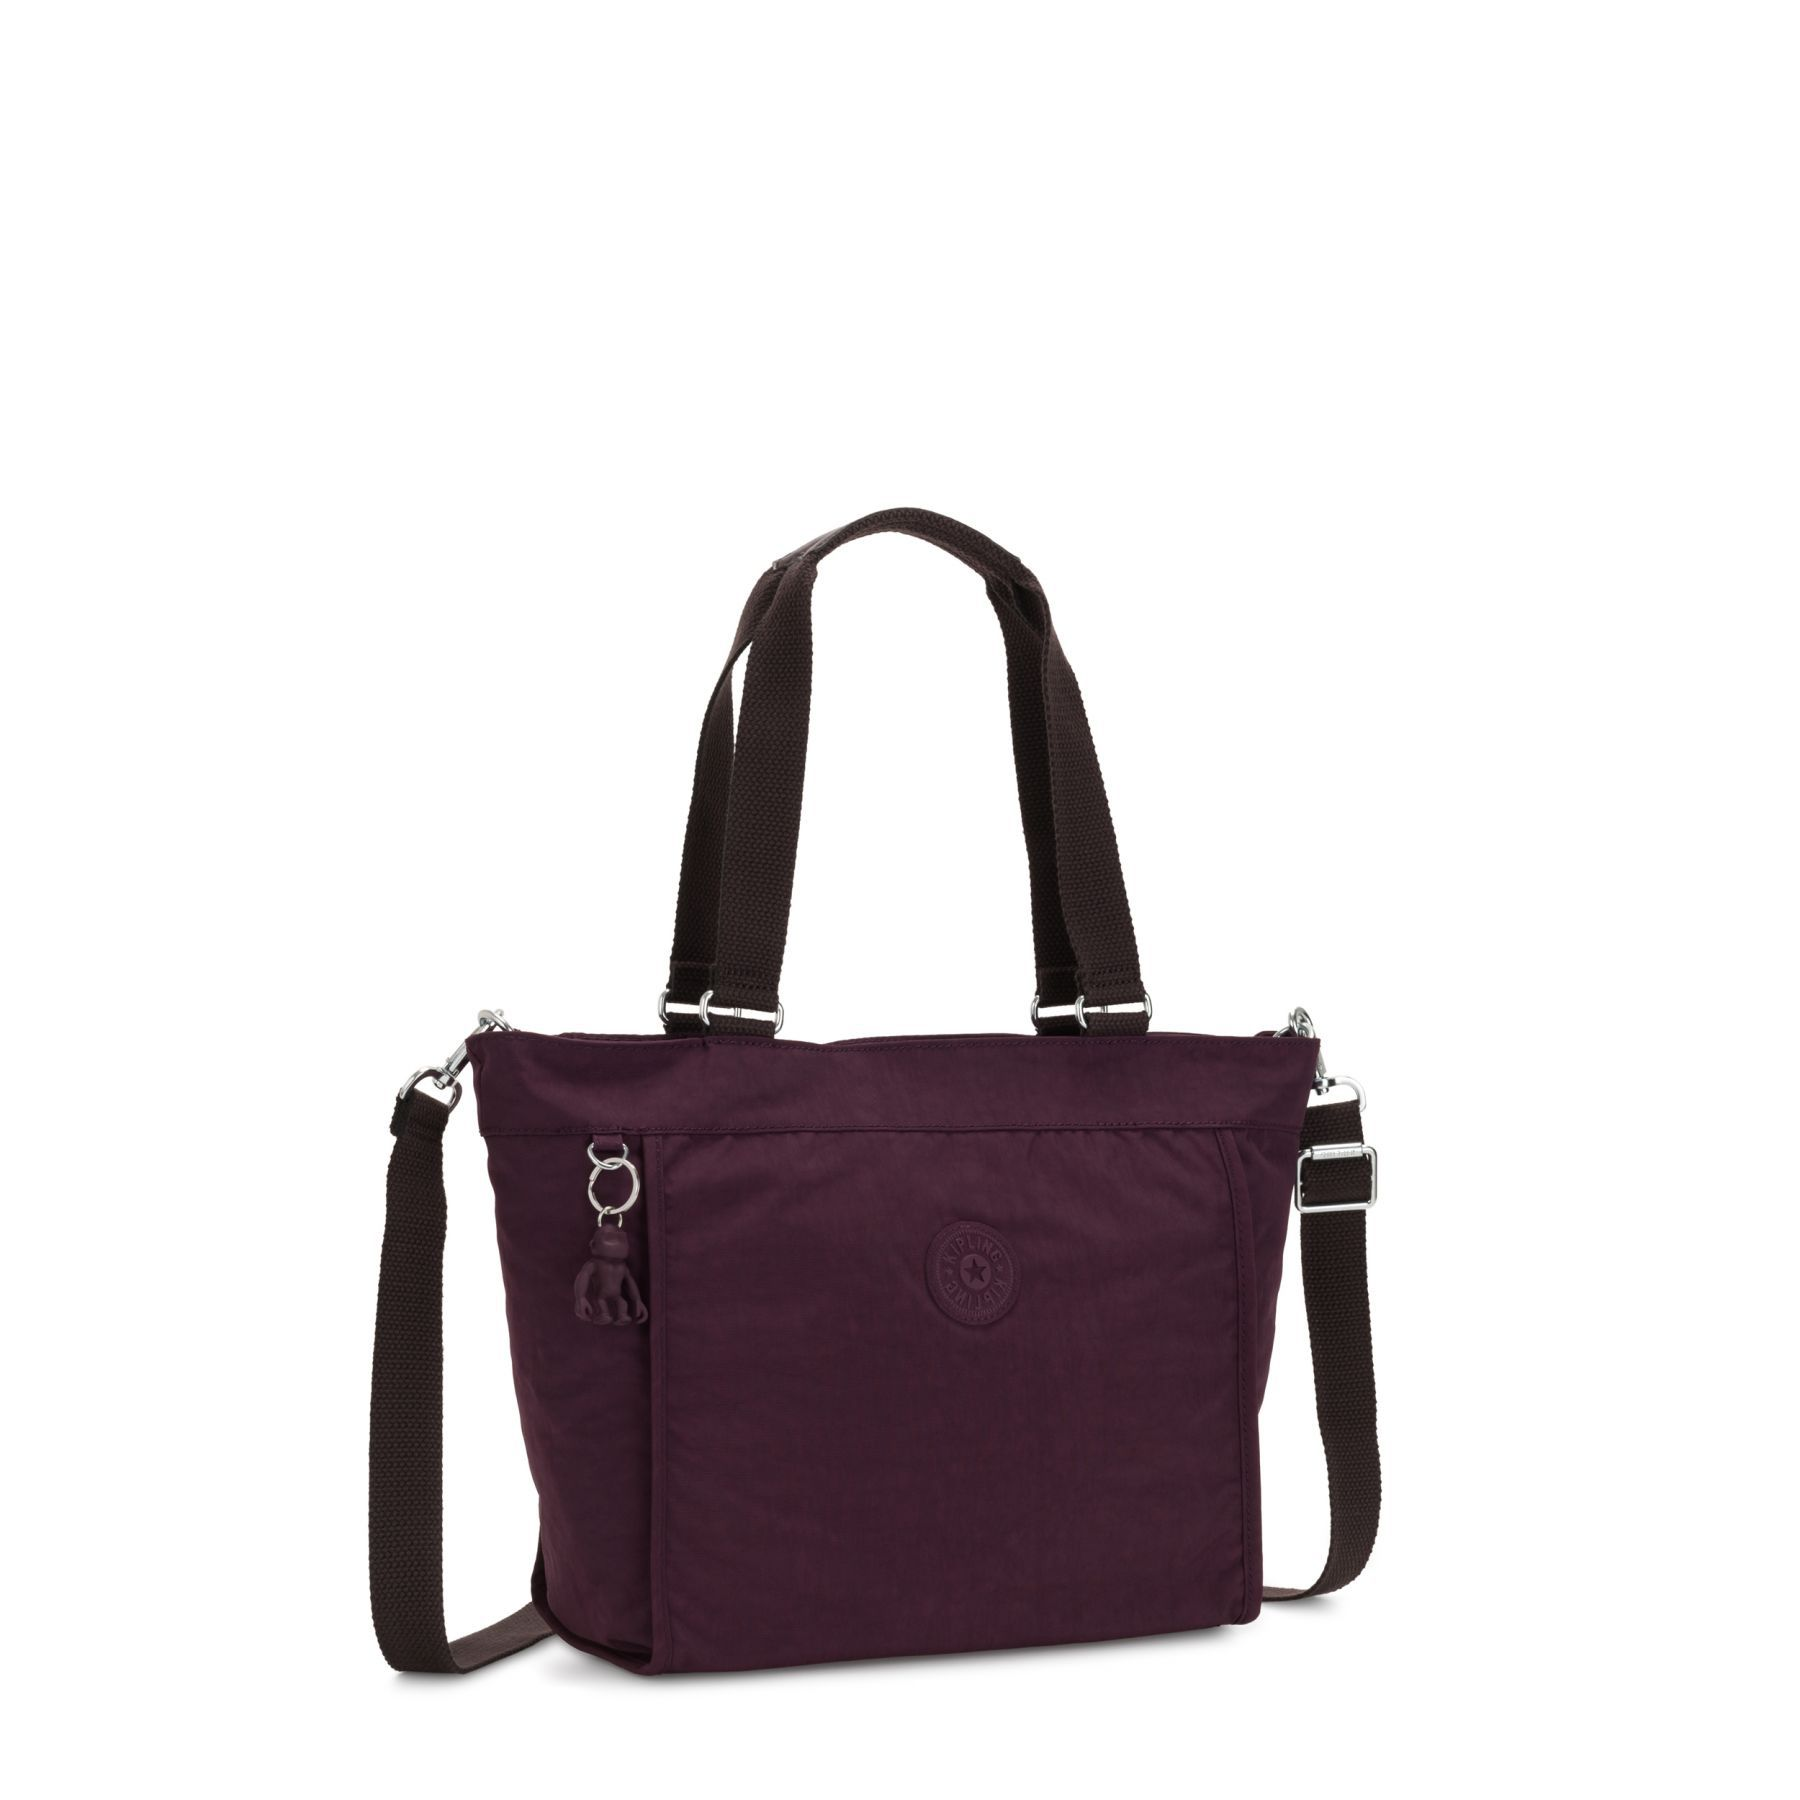 Bolsa de Ombro New Shopper Kipling Dark Plum